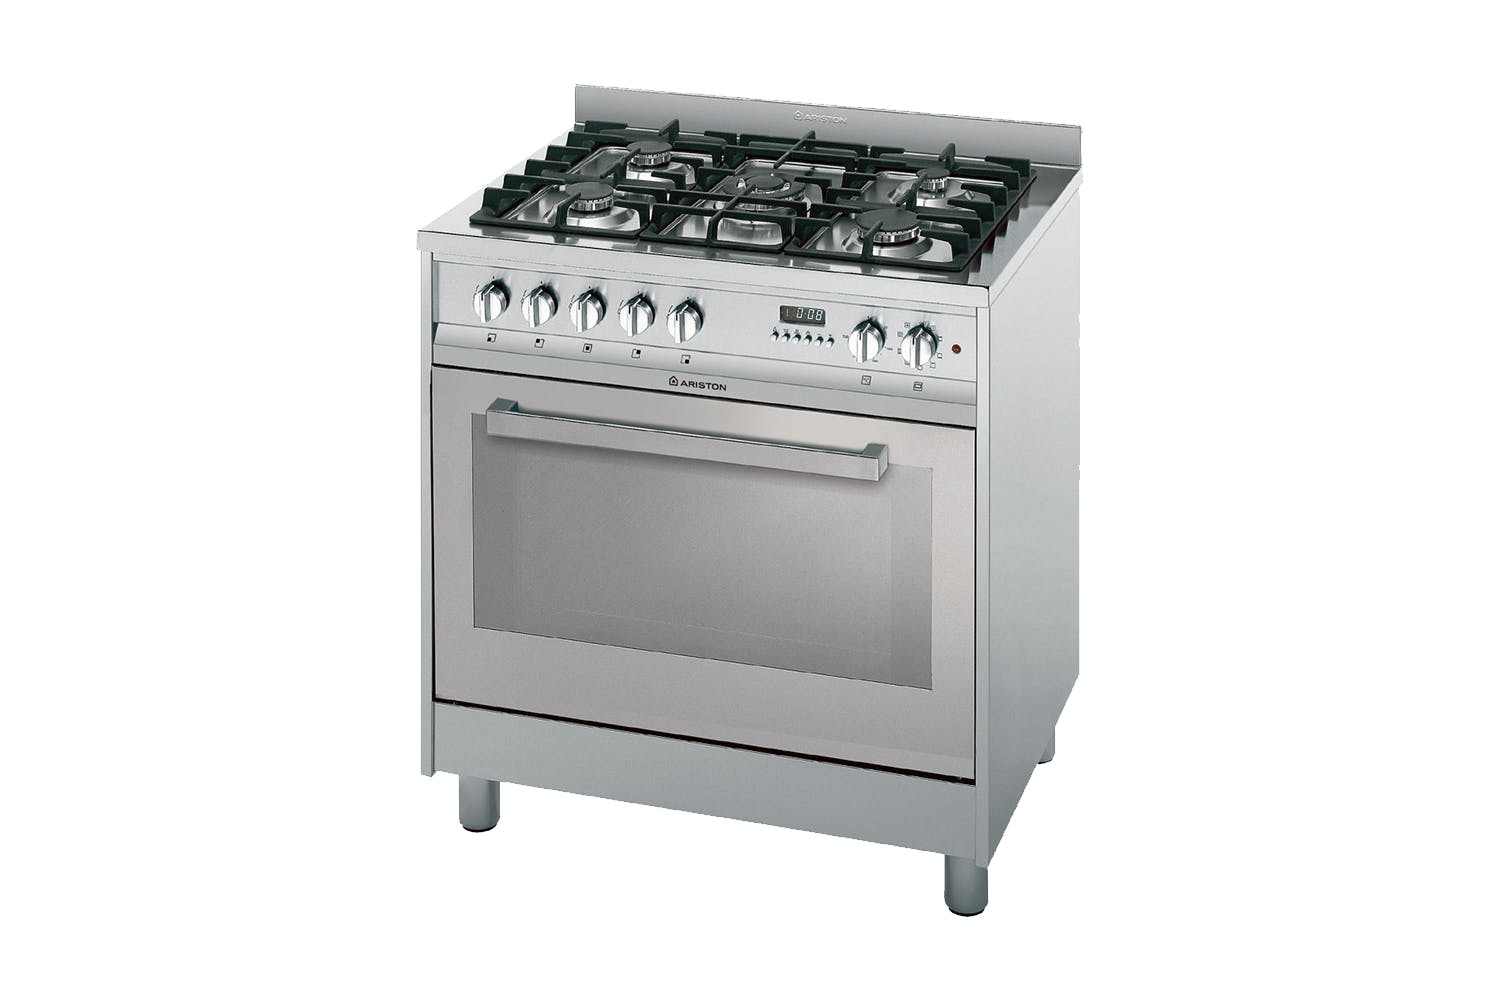 Ariston 90cm Professional Freestanding Oven with Gas Cooktop ...